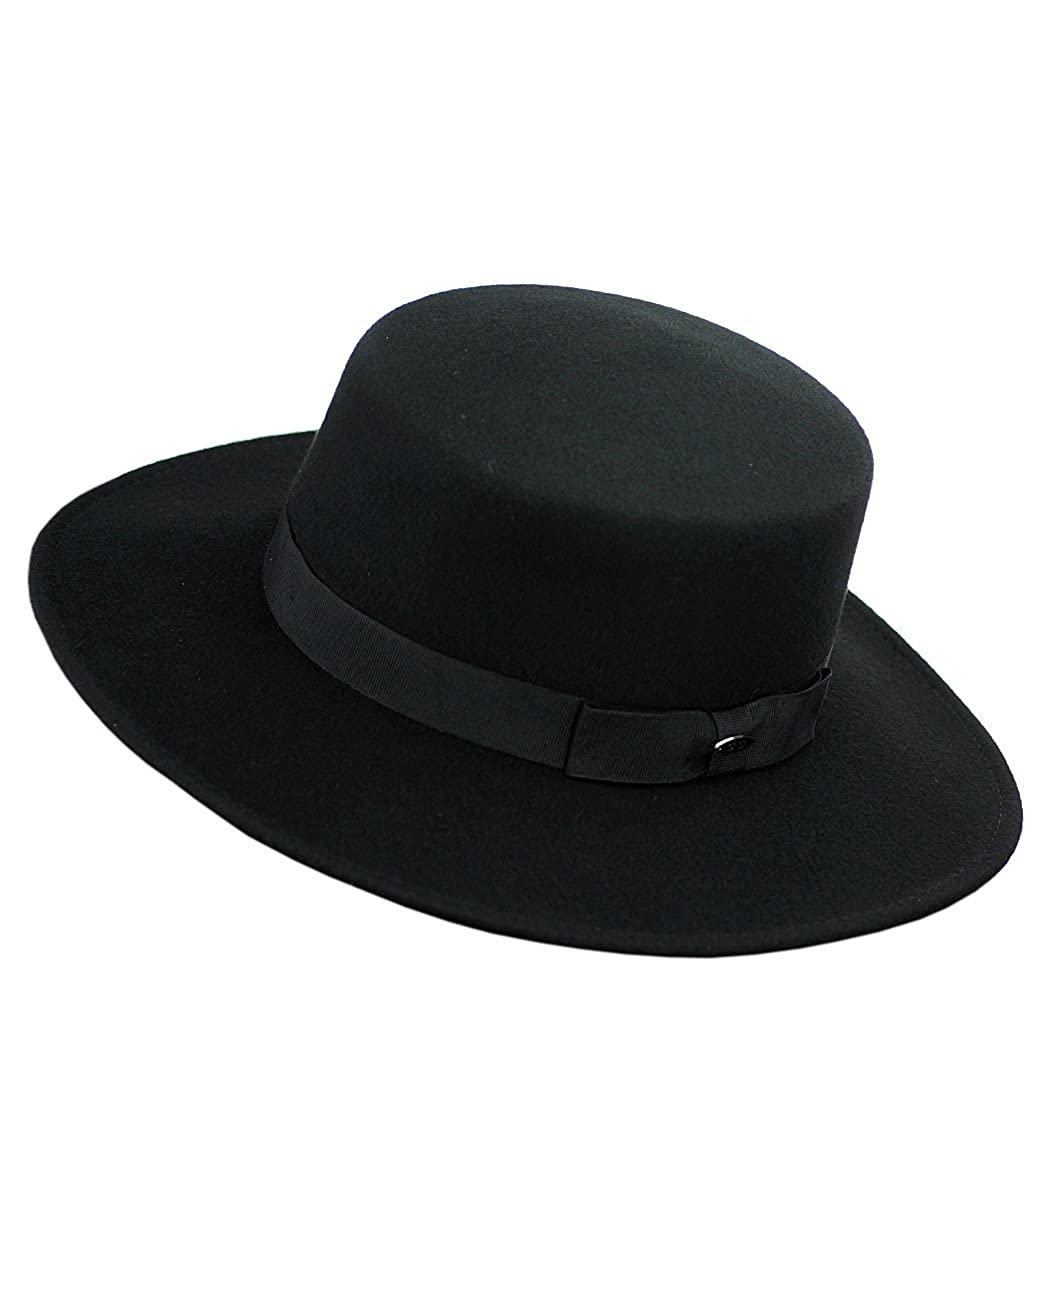 Tea Party Hats – Victorian to 1950s  Wool Wide Brim Porkpie Fedora Hat w/Simple Band Accent NYFASHION101 $39.99 AT vintagedancer.com